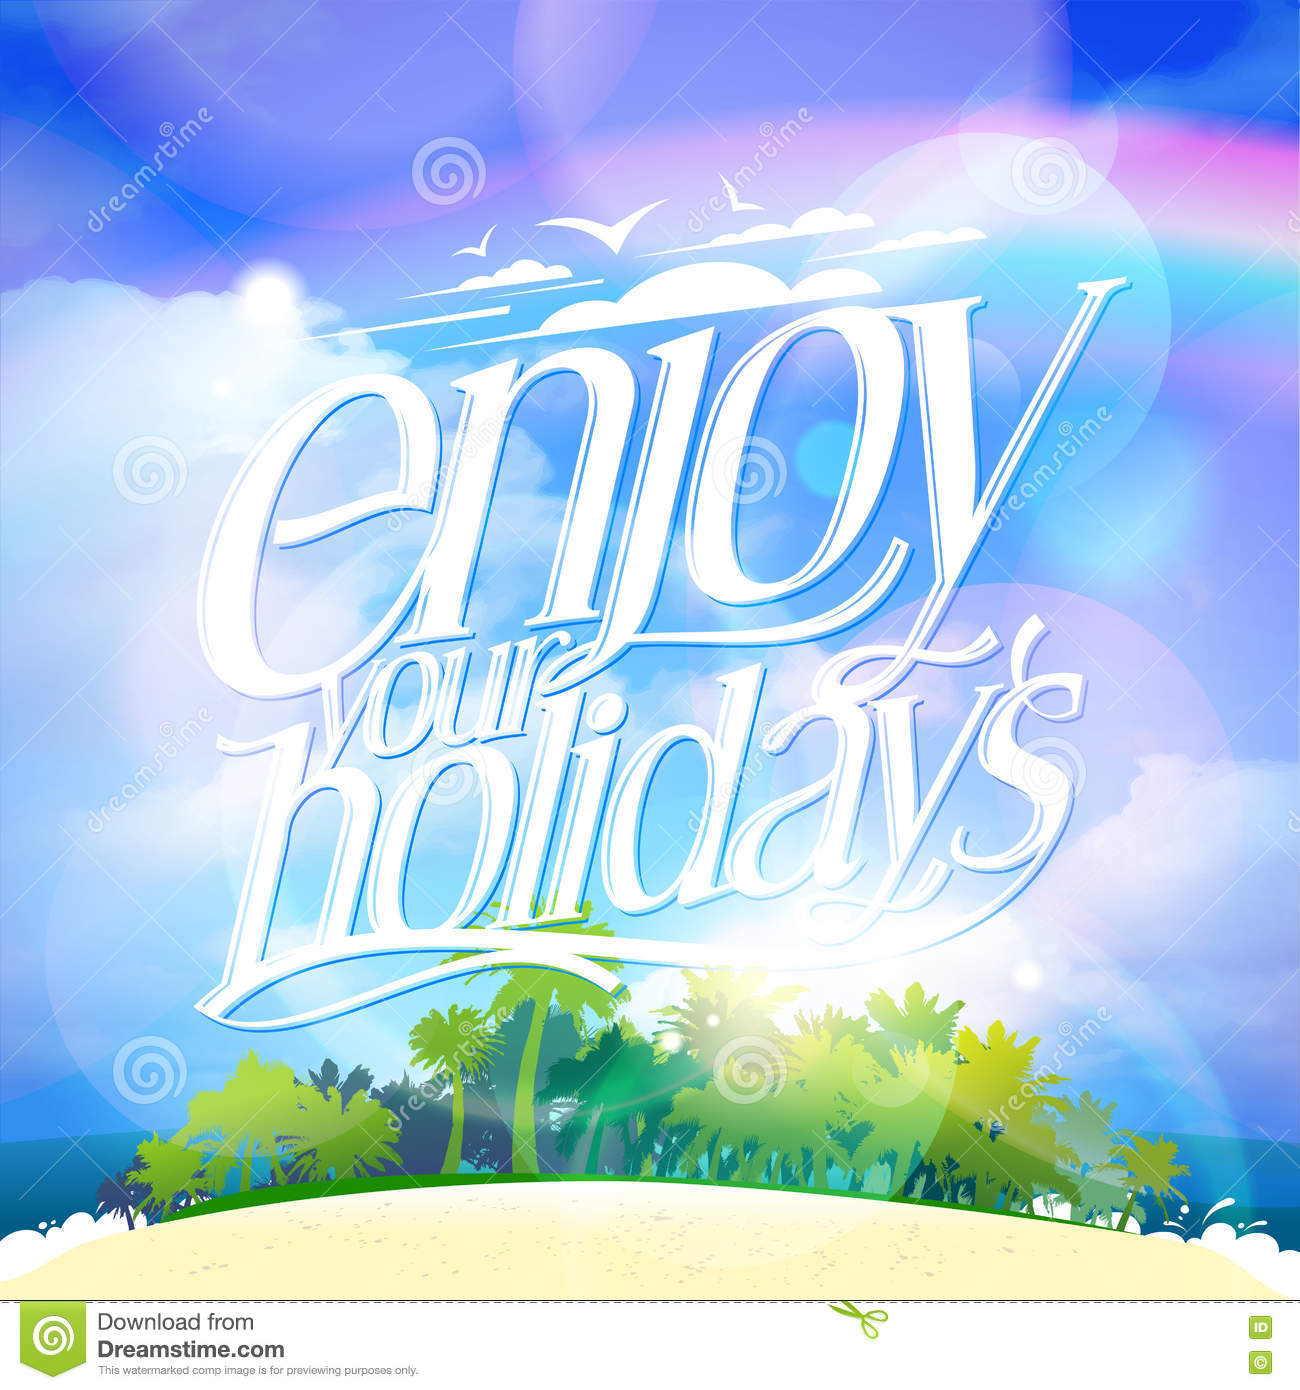 Enjoy Your Holidays Quote Card With Tropical Island Royalty Free Stock Image